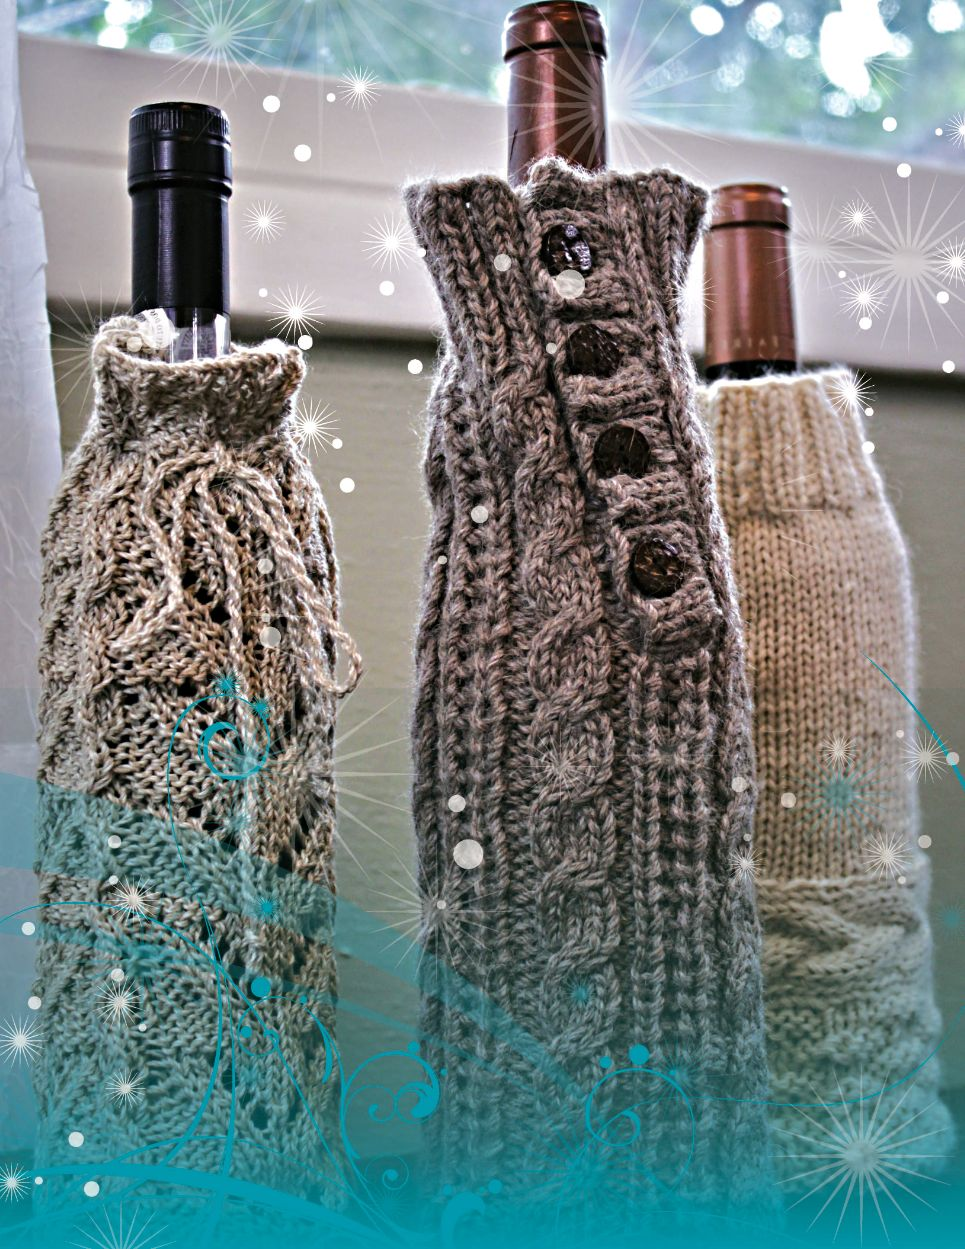 Home page fiber trends ft235 wine bottle cozies dt1010fo